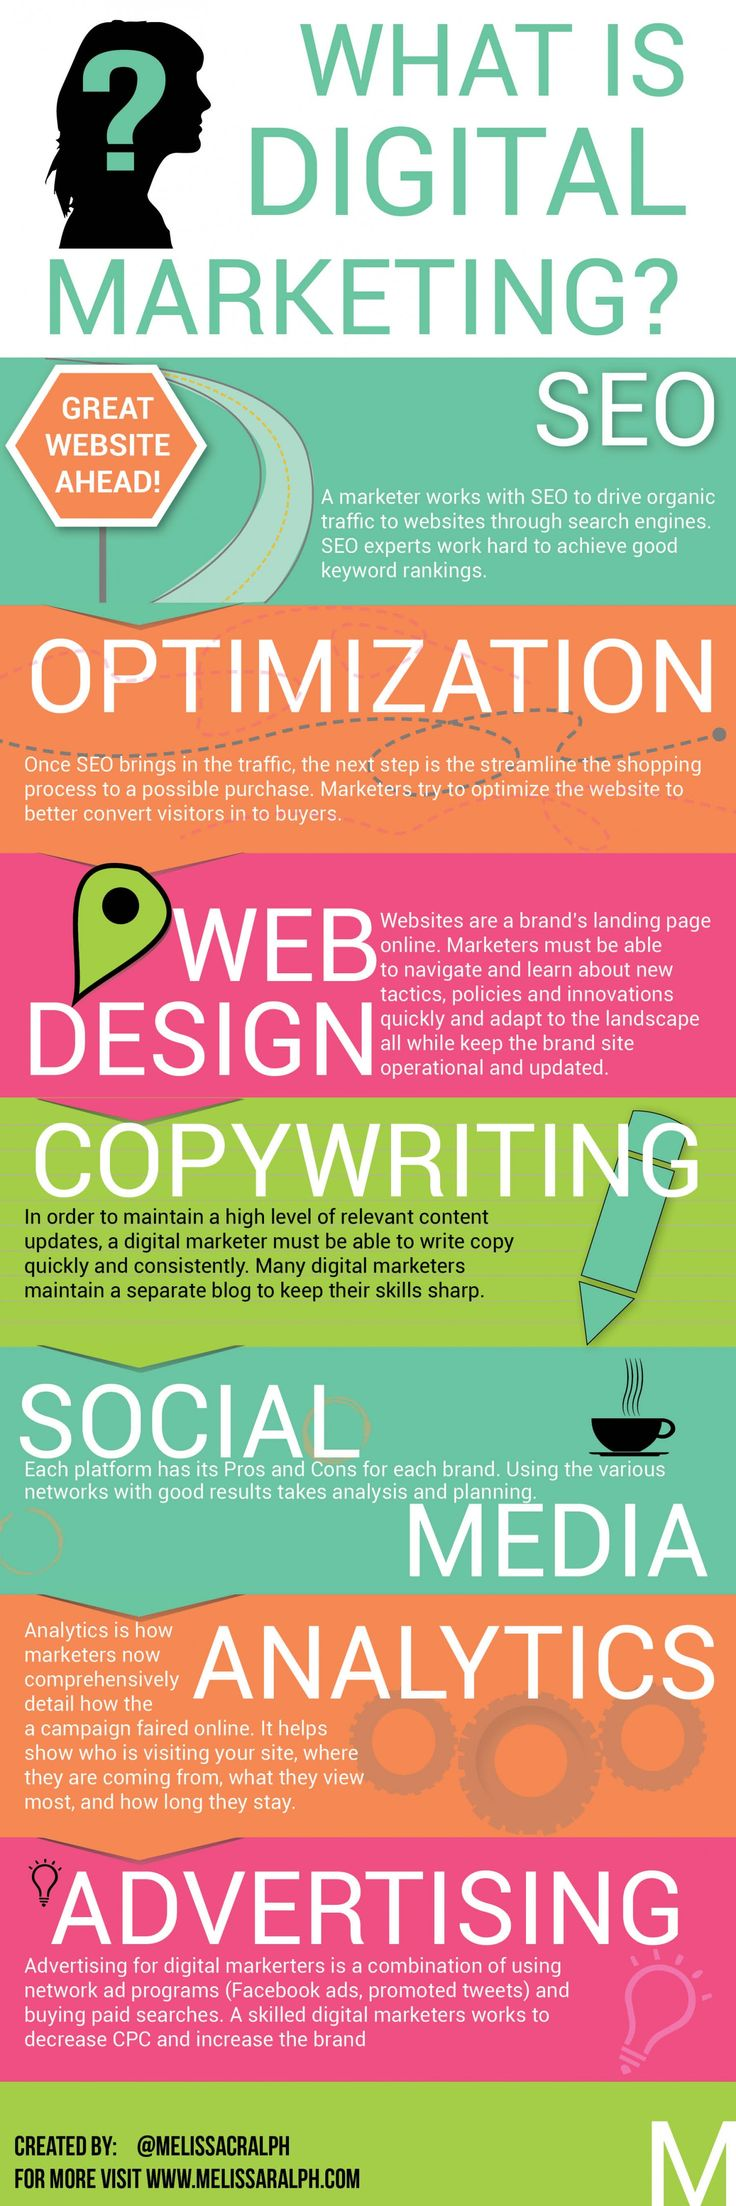 What is Digital Marketing? It´s: SEO, Optimizing, Web Design, Copywriting, Social Media, Analytics  Advertising  #infographic